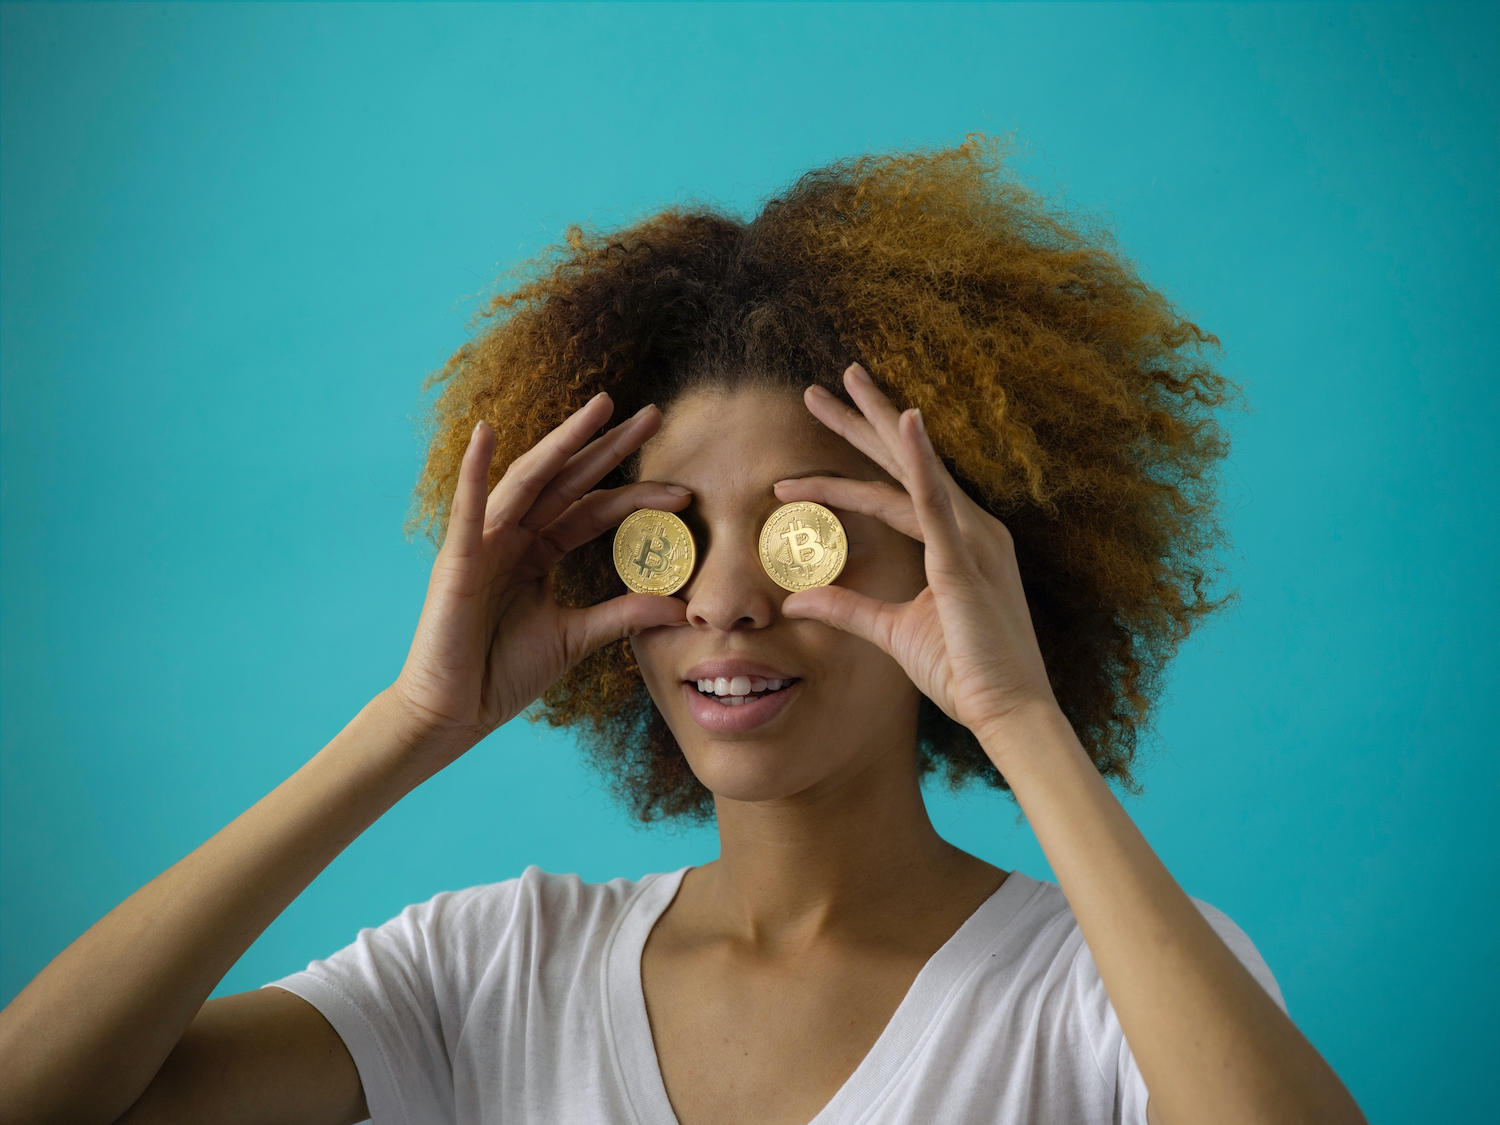 A woman is seen holding two coins to her eyes